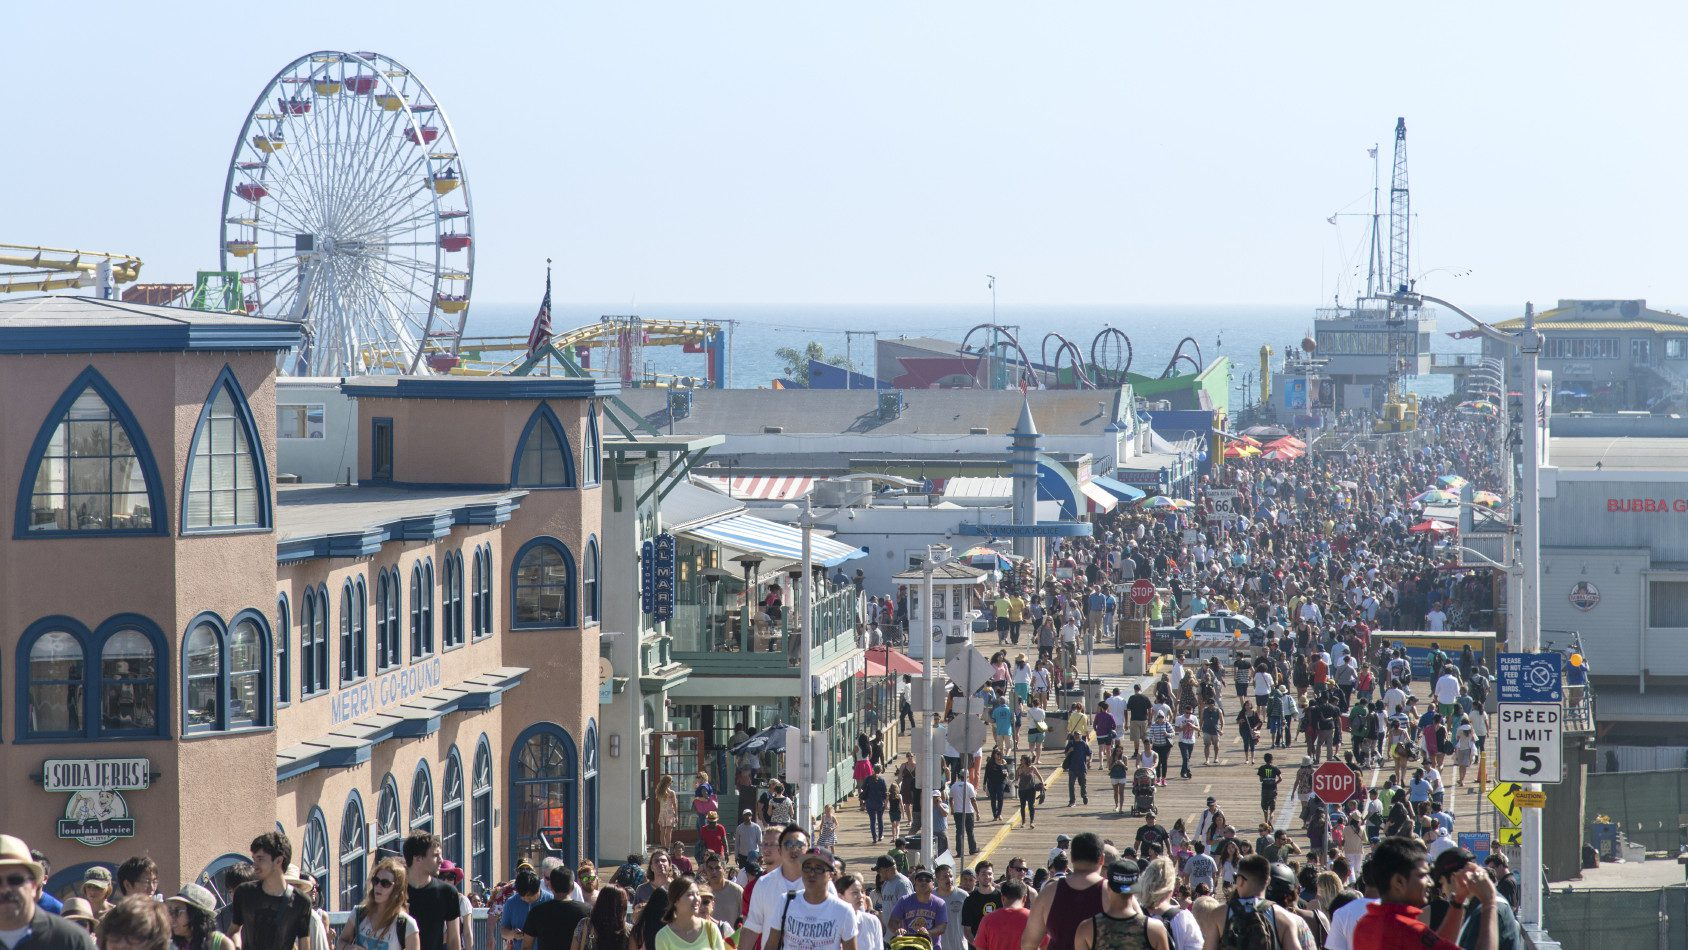 The amusement park on the Santa Monica Pier is a big draw for tourists.